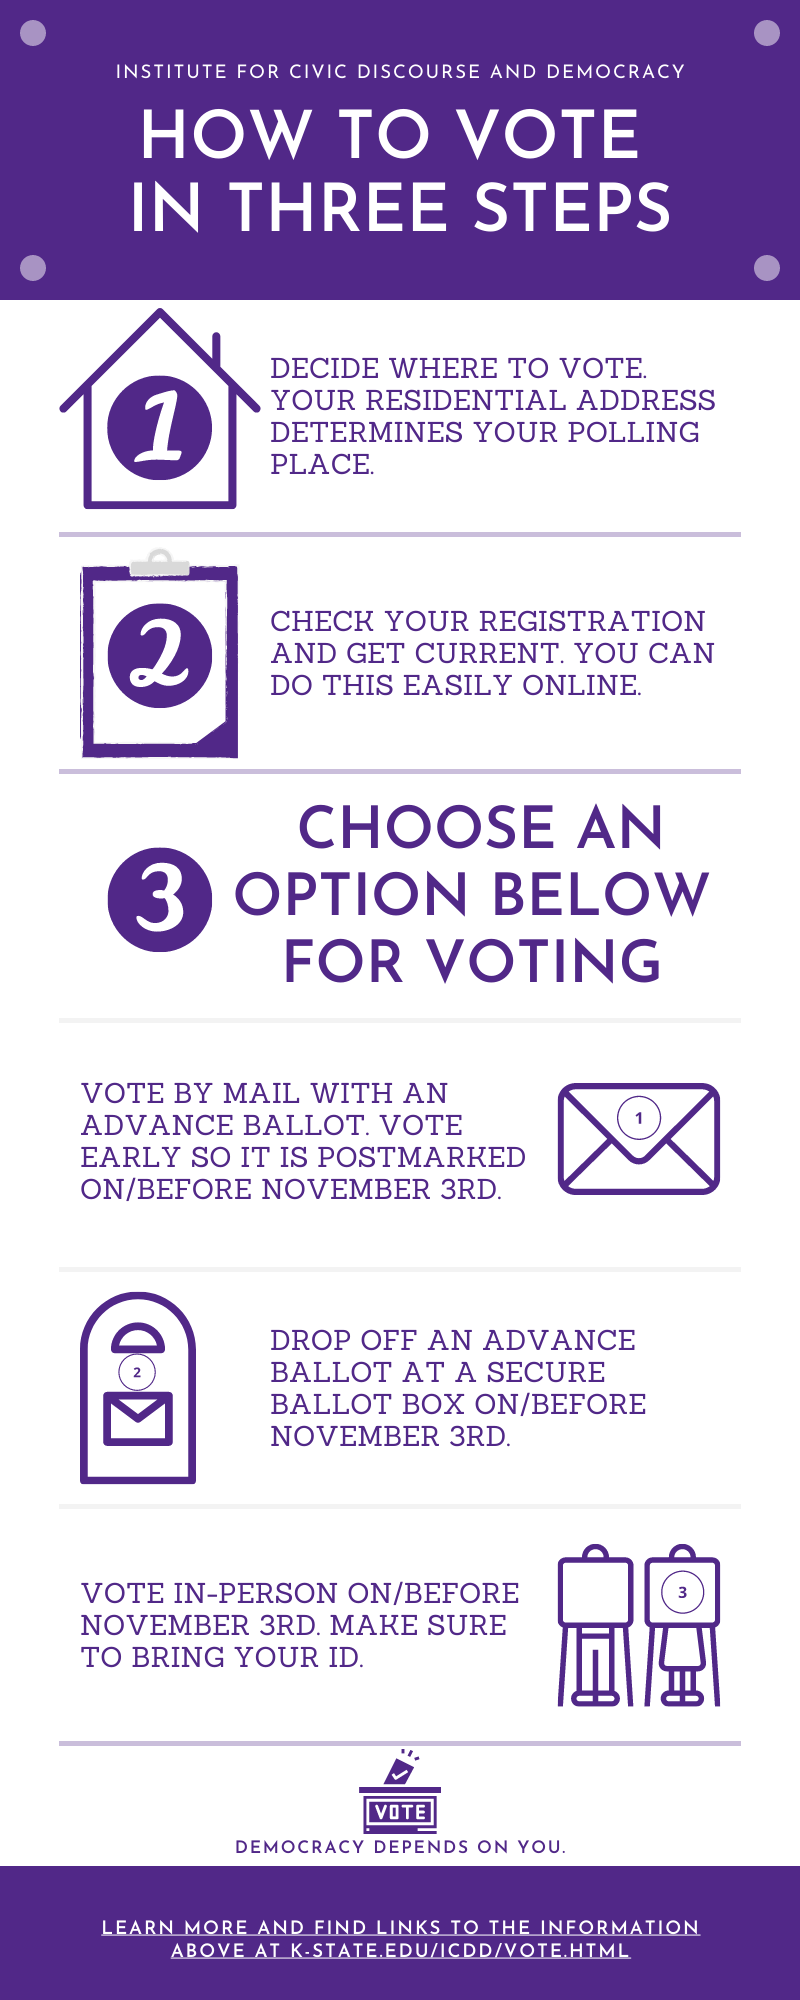 How to Vote in Three Streps